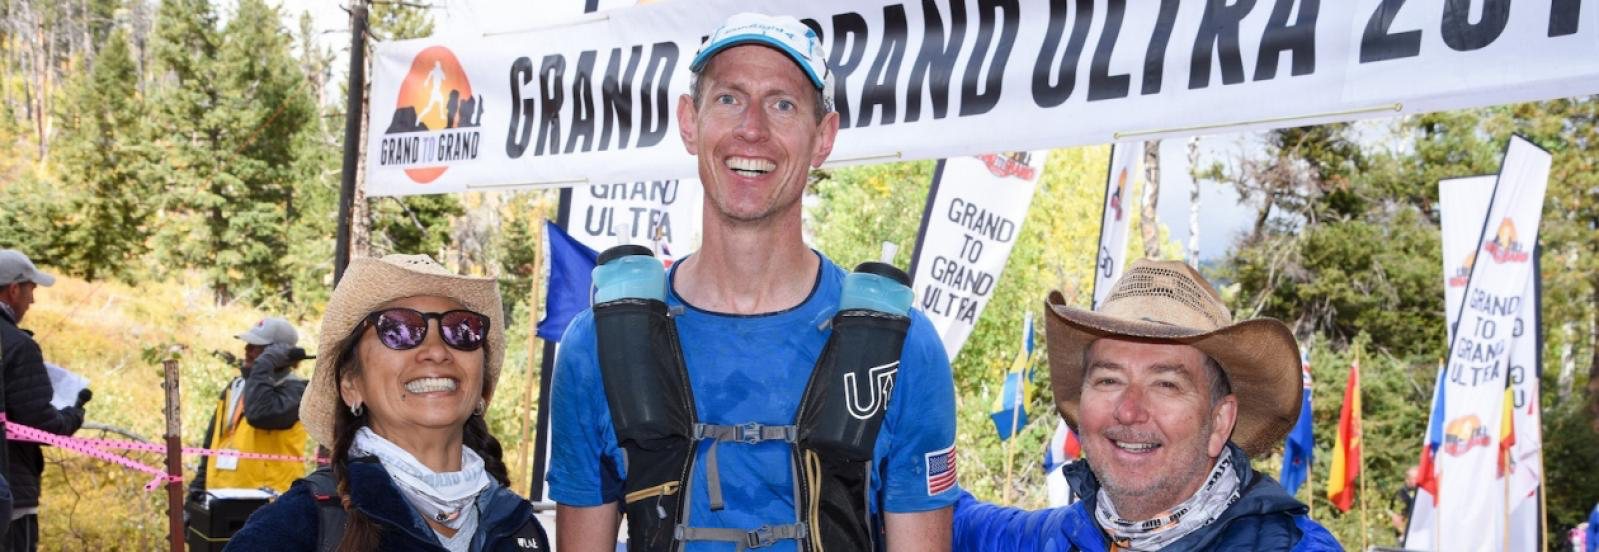 joseph taylor 2019 finish line cropped.jpg